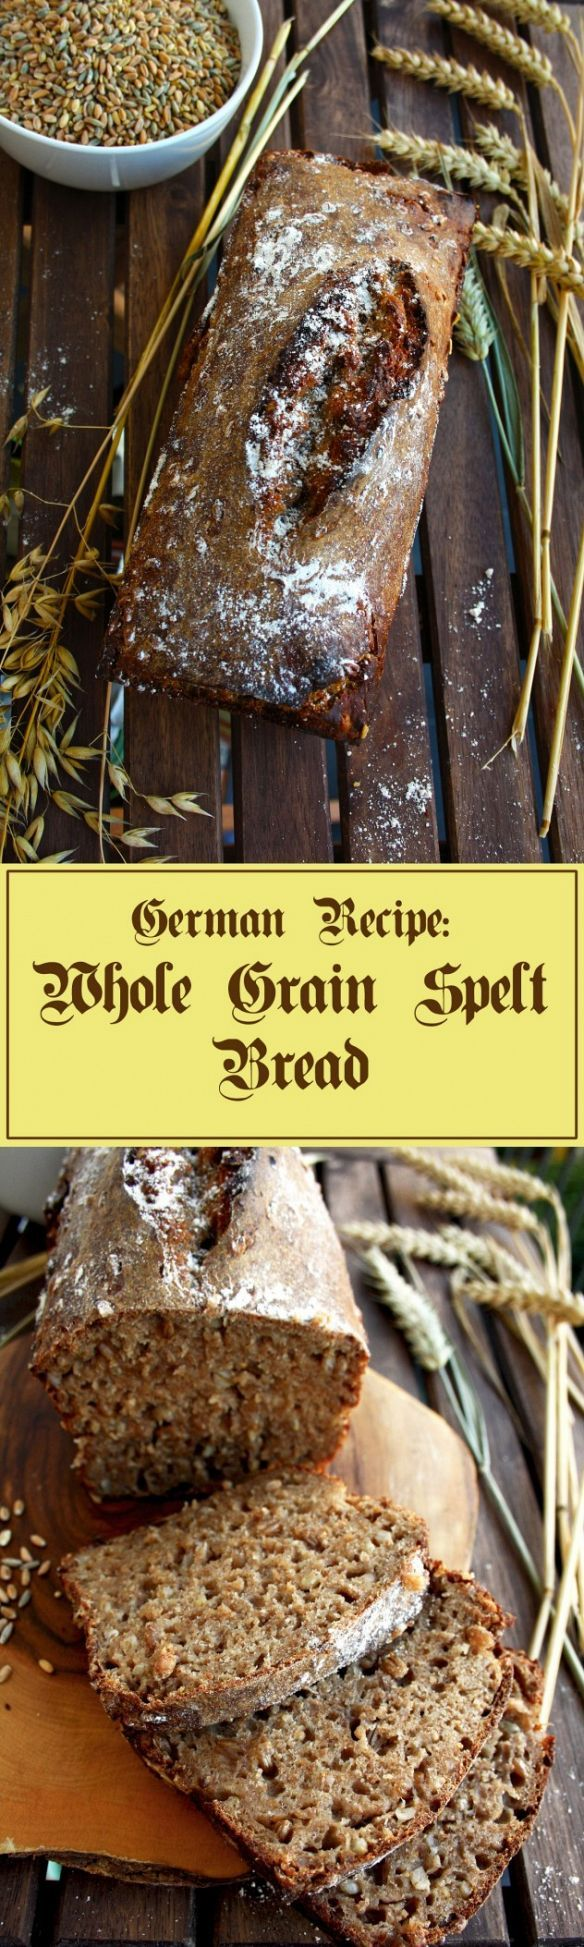 Whole Grain Spelt Bread - super healthy and delicious alternative to usual wheat bread! Check it out!